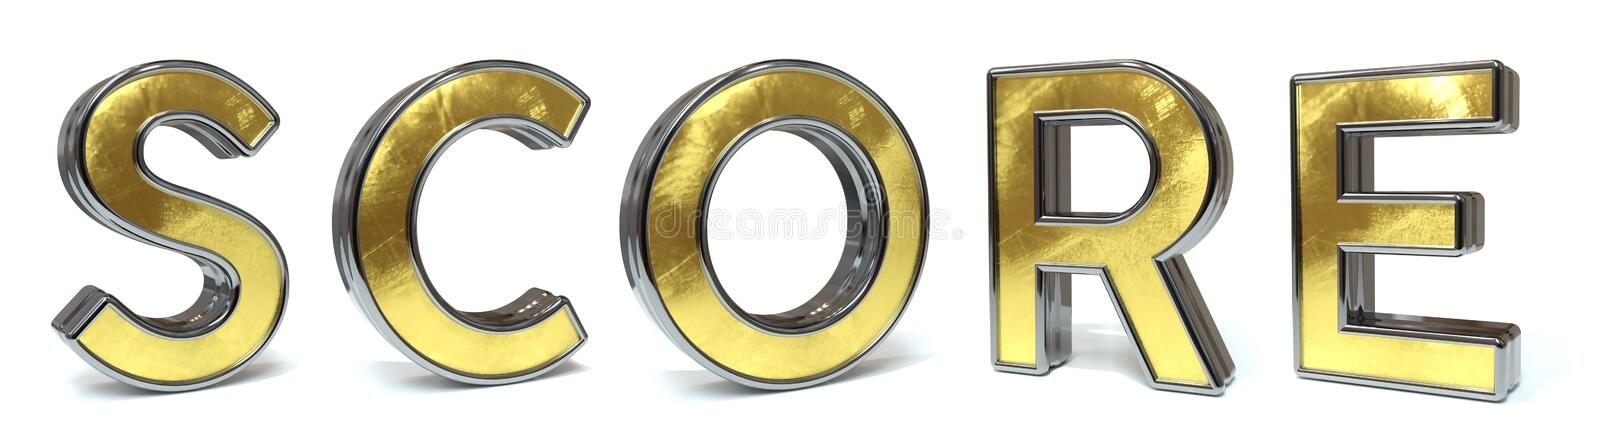 Score golden text. Score 3d rendered gold and silver color text on white royalty free illustration